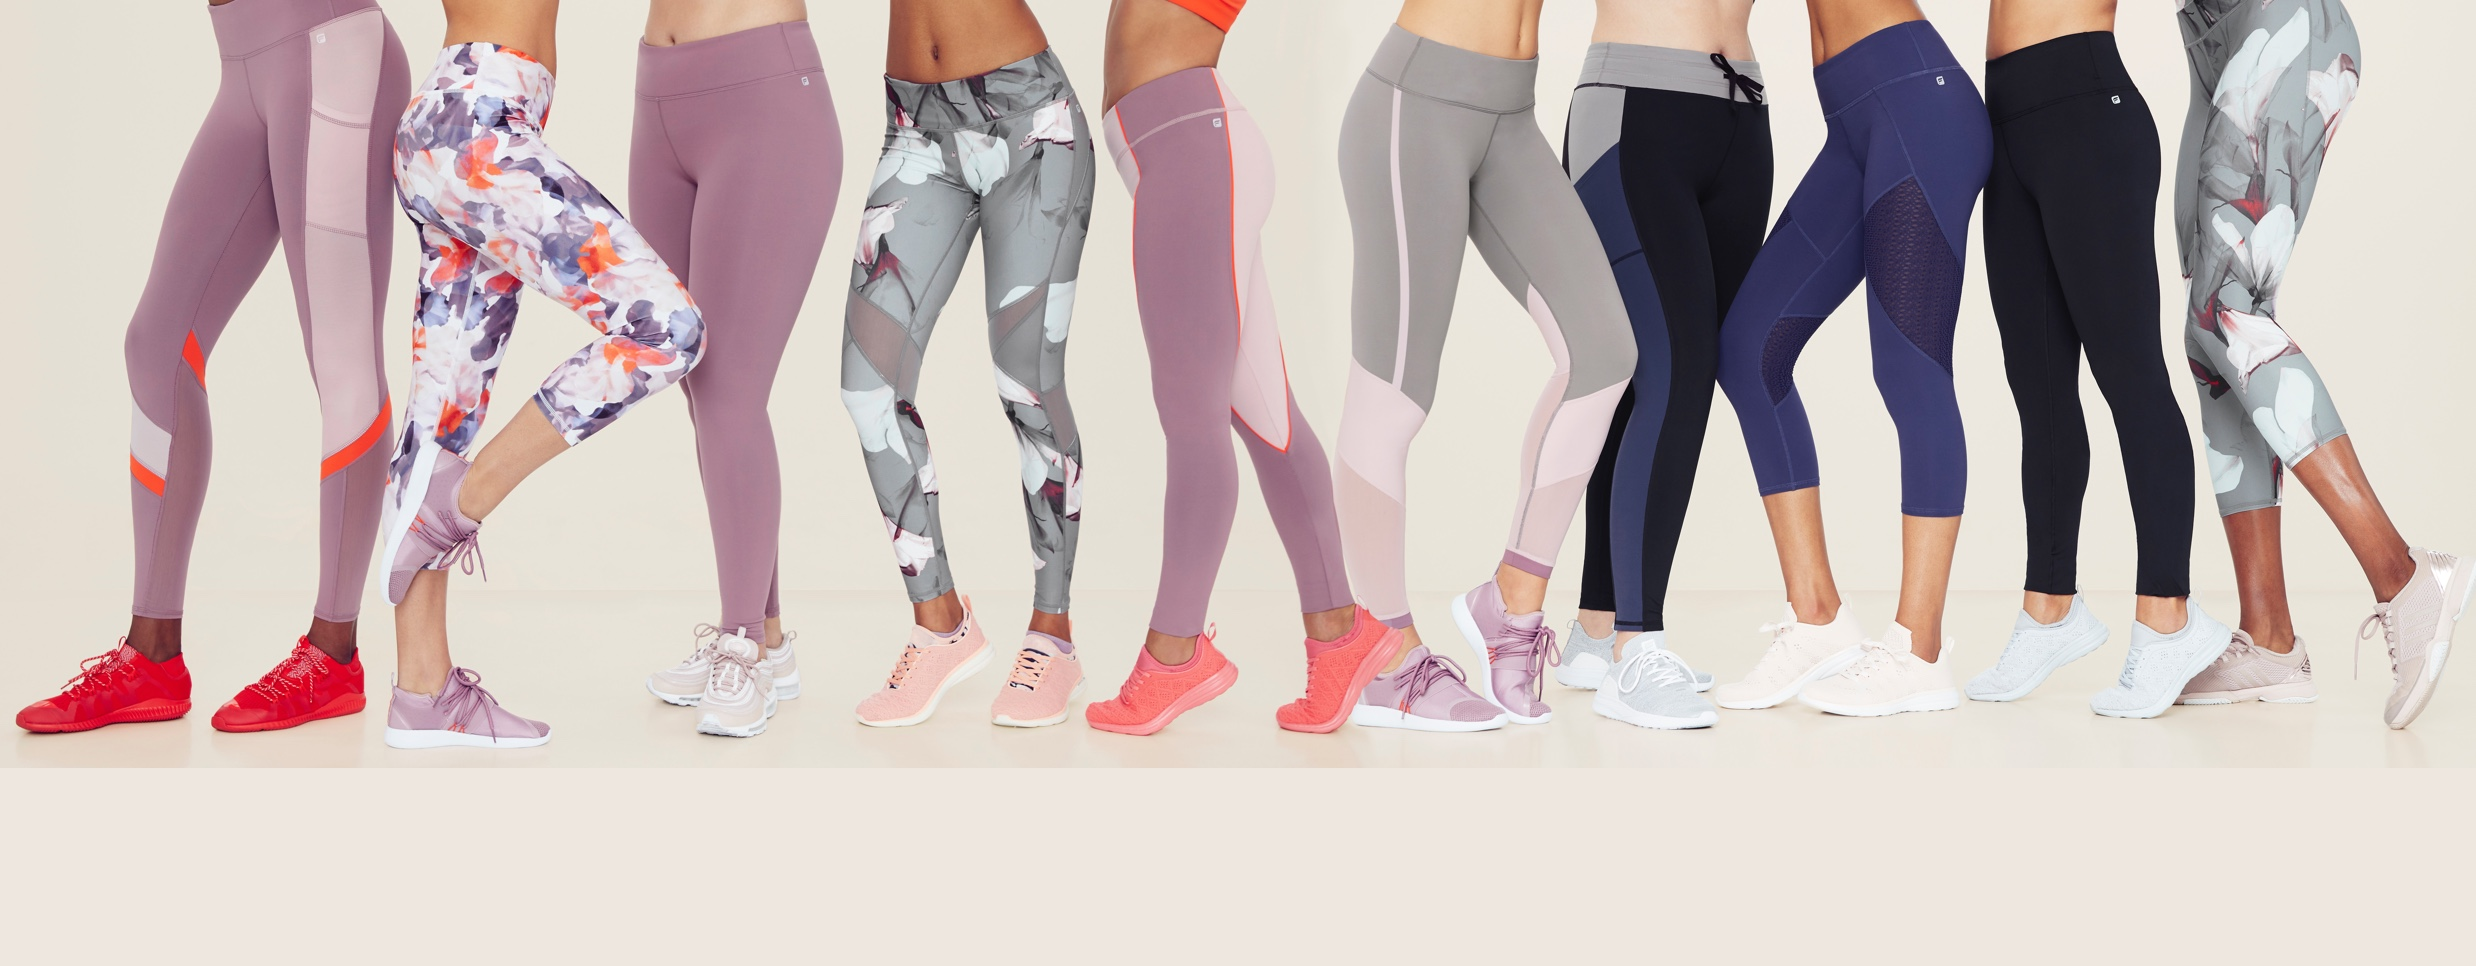 df53619c3f489 Exclusive Collection | Fabletics